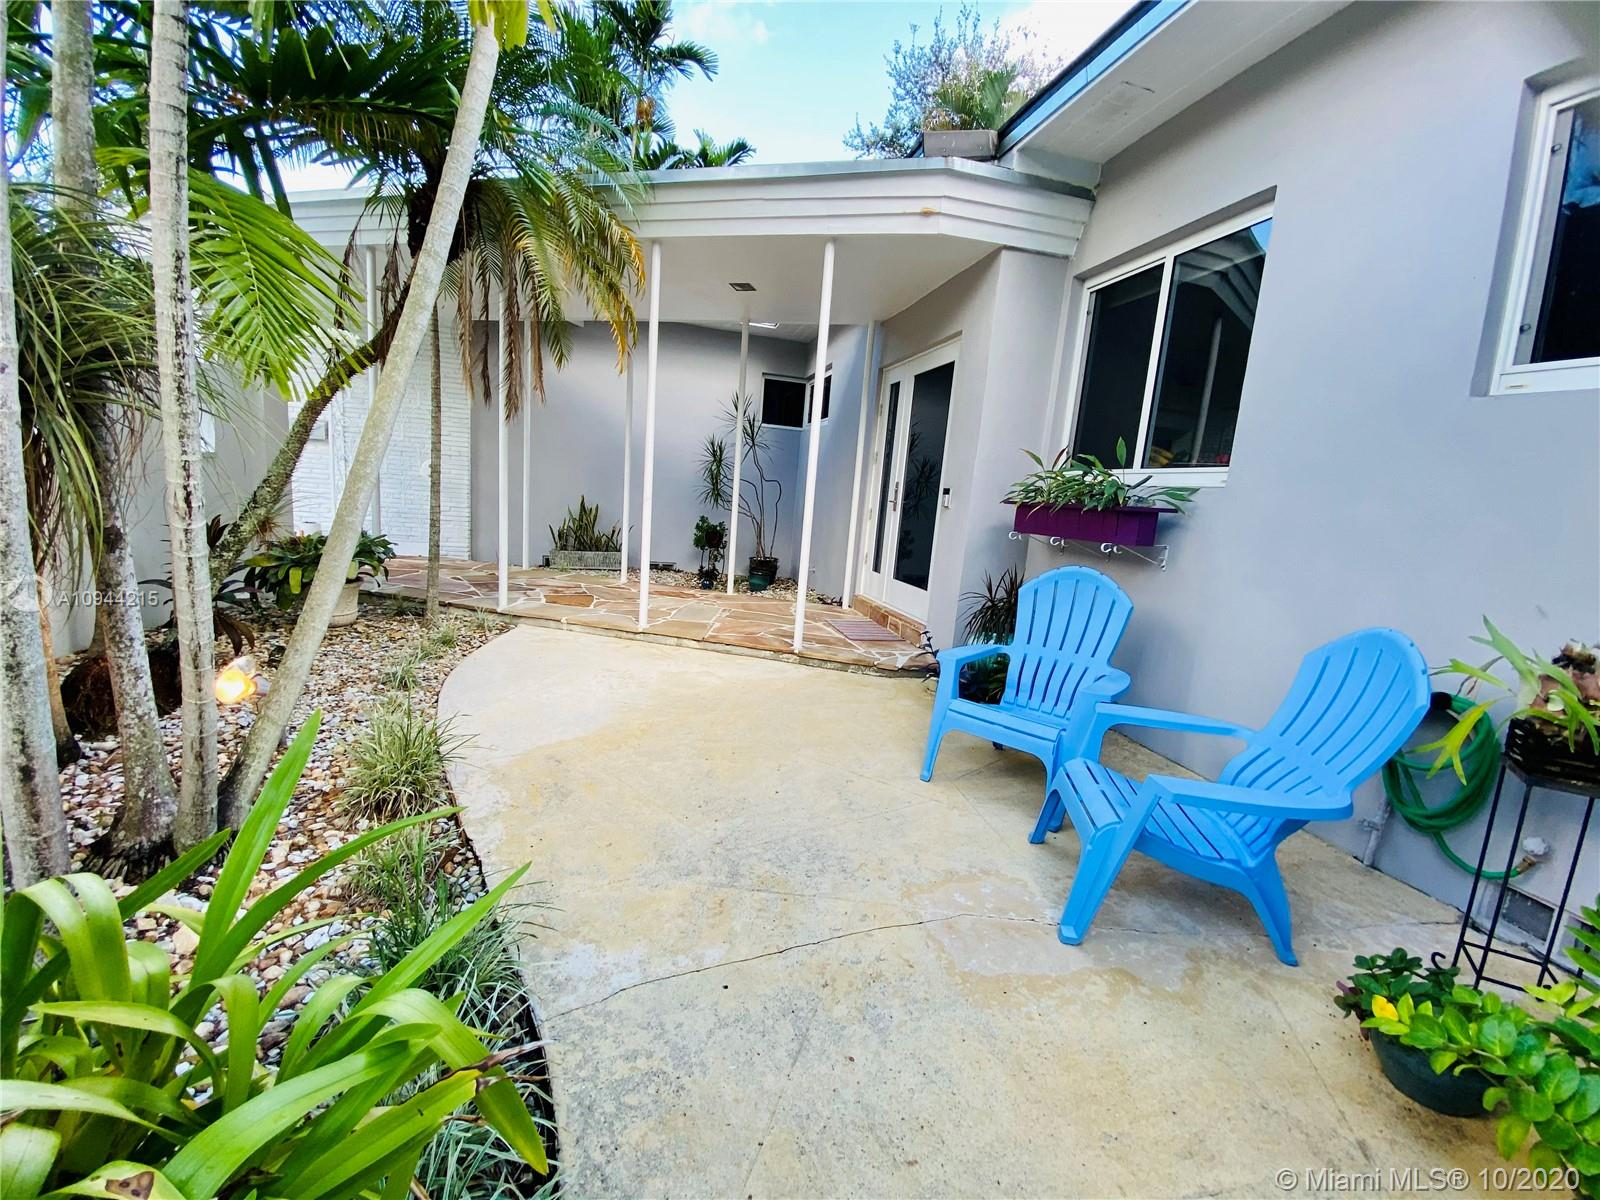 1156 NE 101st St, Miami Shores, Florida 33138, 3 Bedrooms Bedrooms, ,2 BathroomsBathrooms,Residential,For Sale,1156 NE 101st St,A10944215